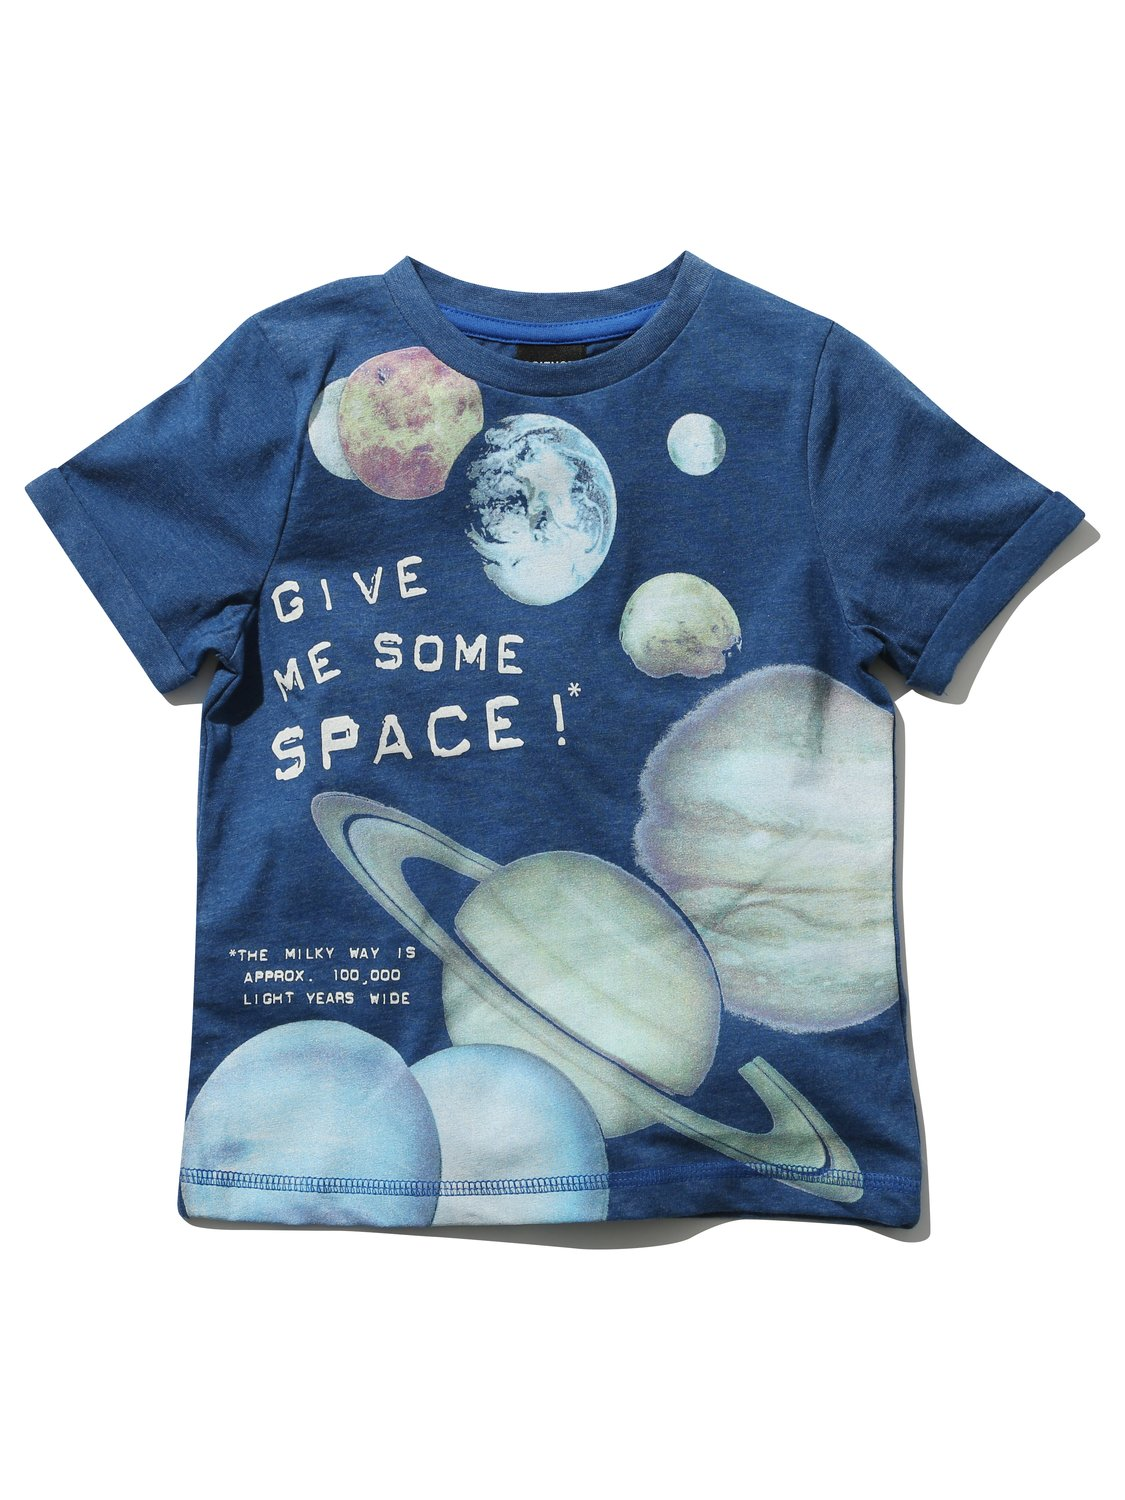 Science Museum kids short sleeve crew neck glow in the dark planet slogan print t-shirt - Navy